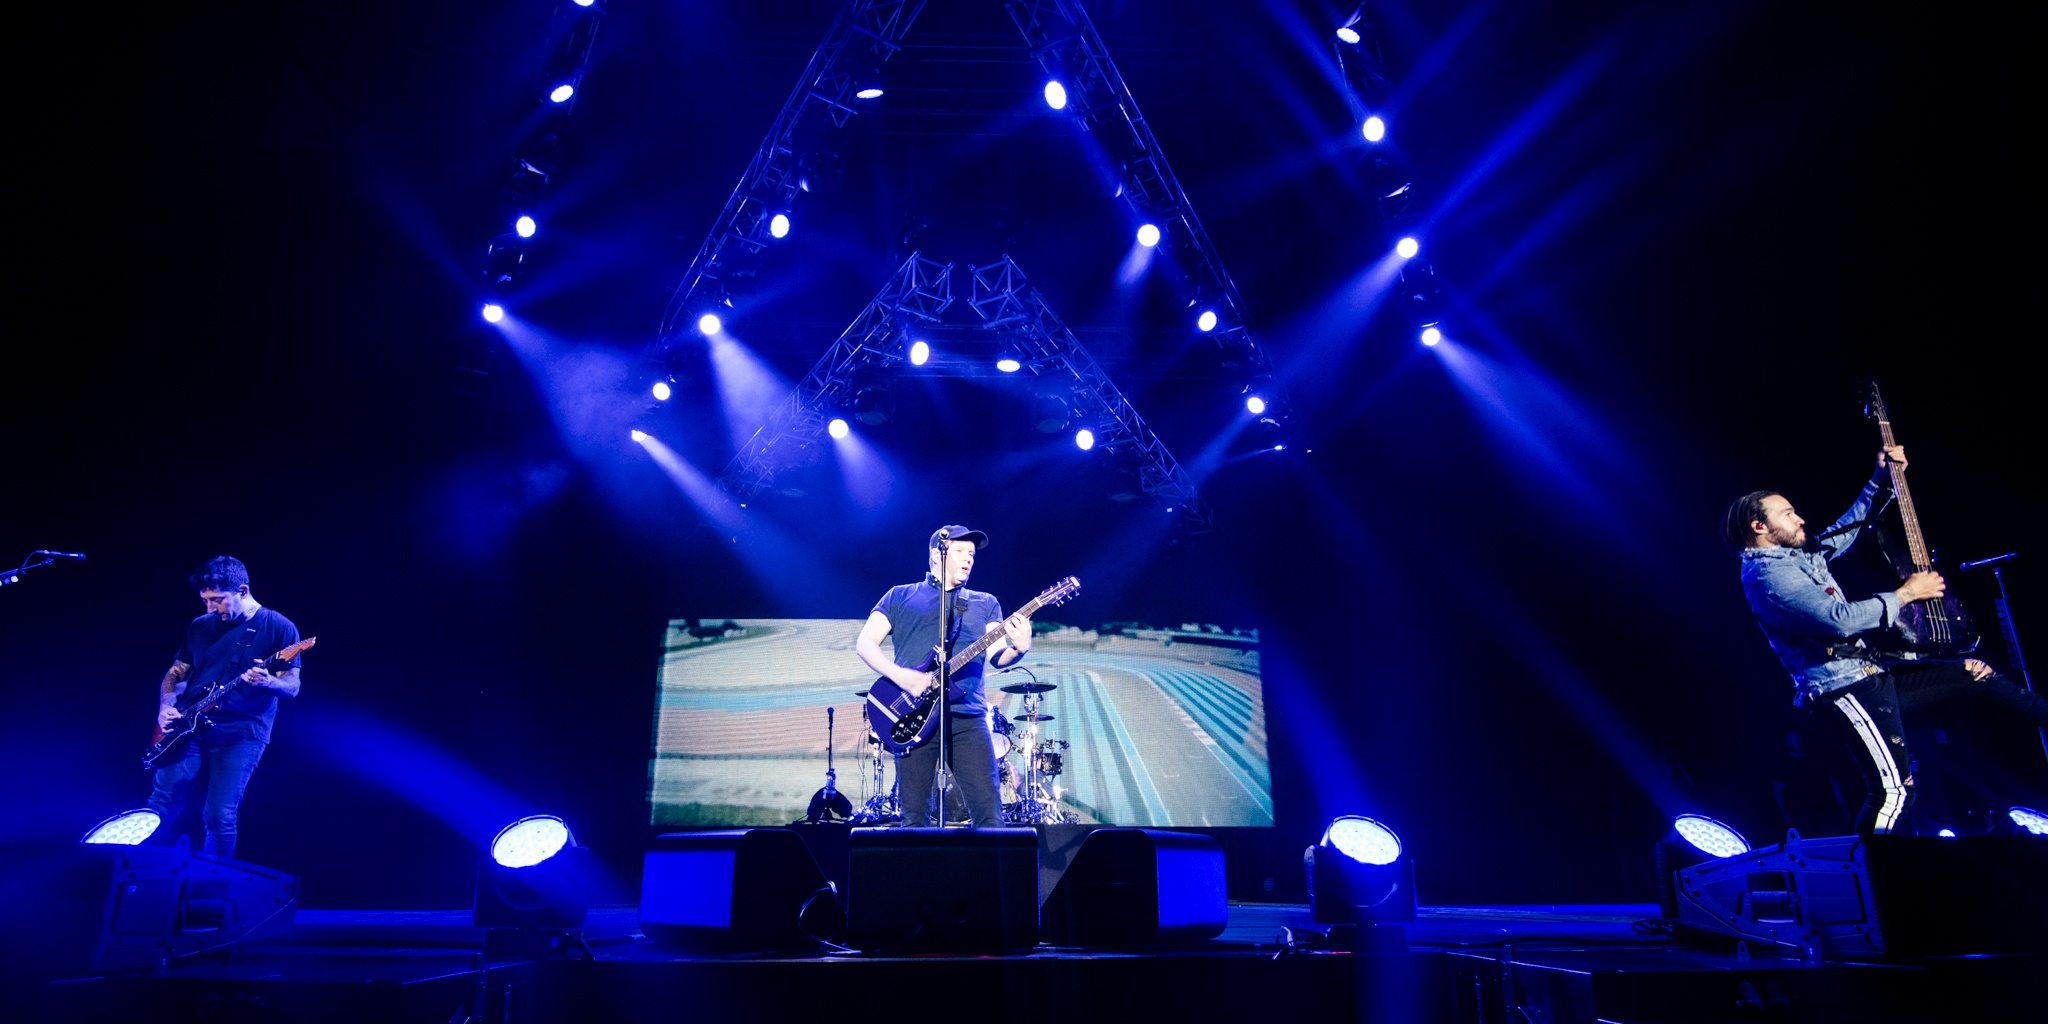 This ain't a scene, it's Fall Out Boy's unforgettable Singapore show – gig report